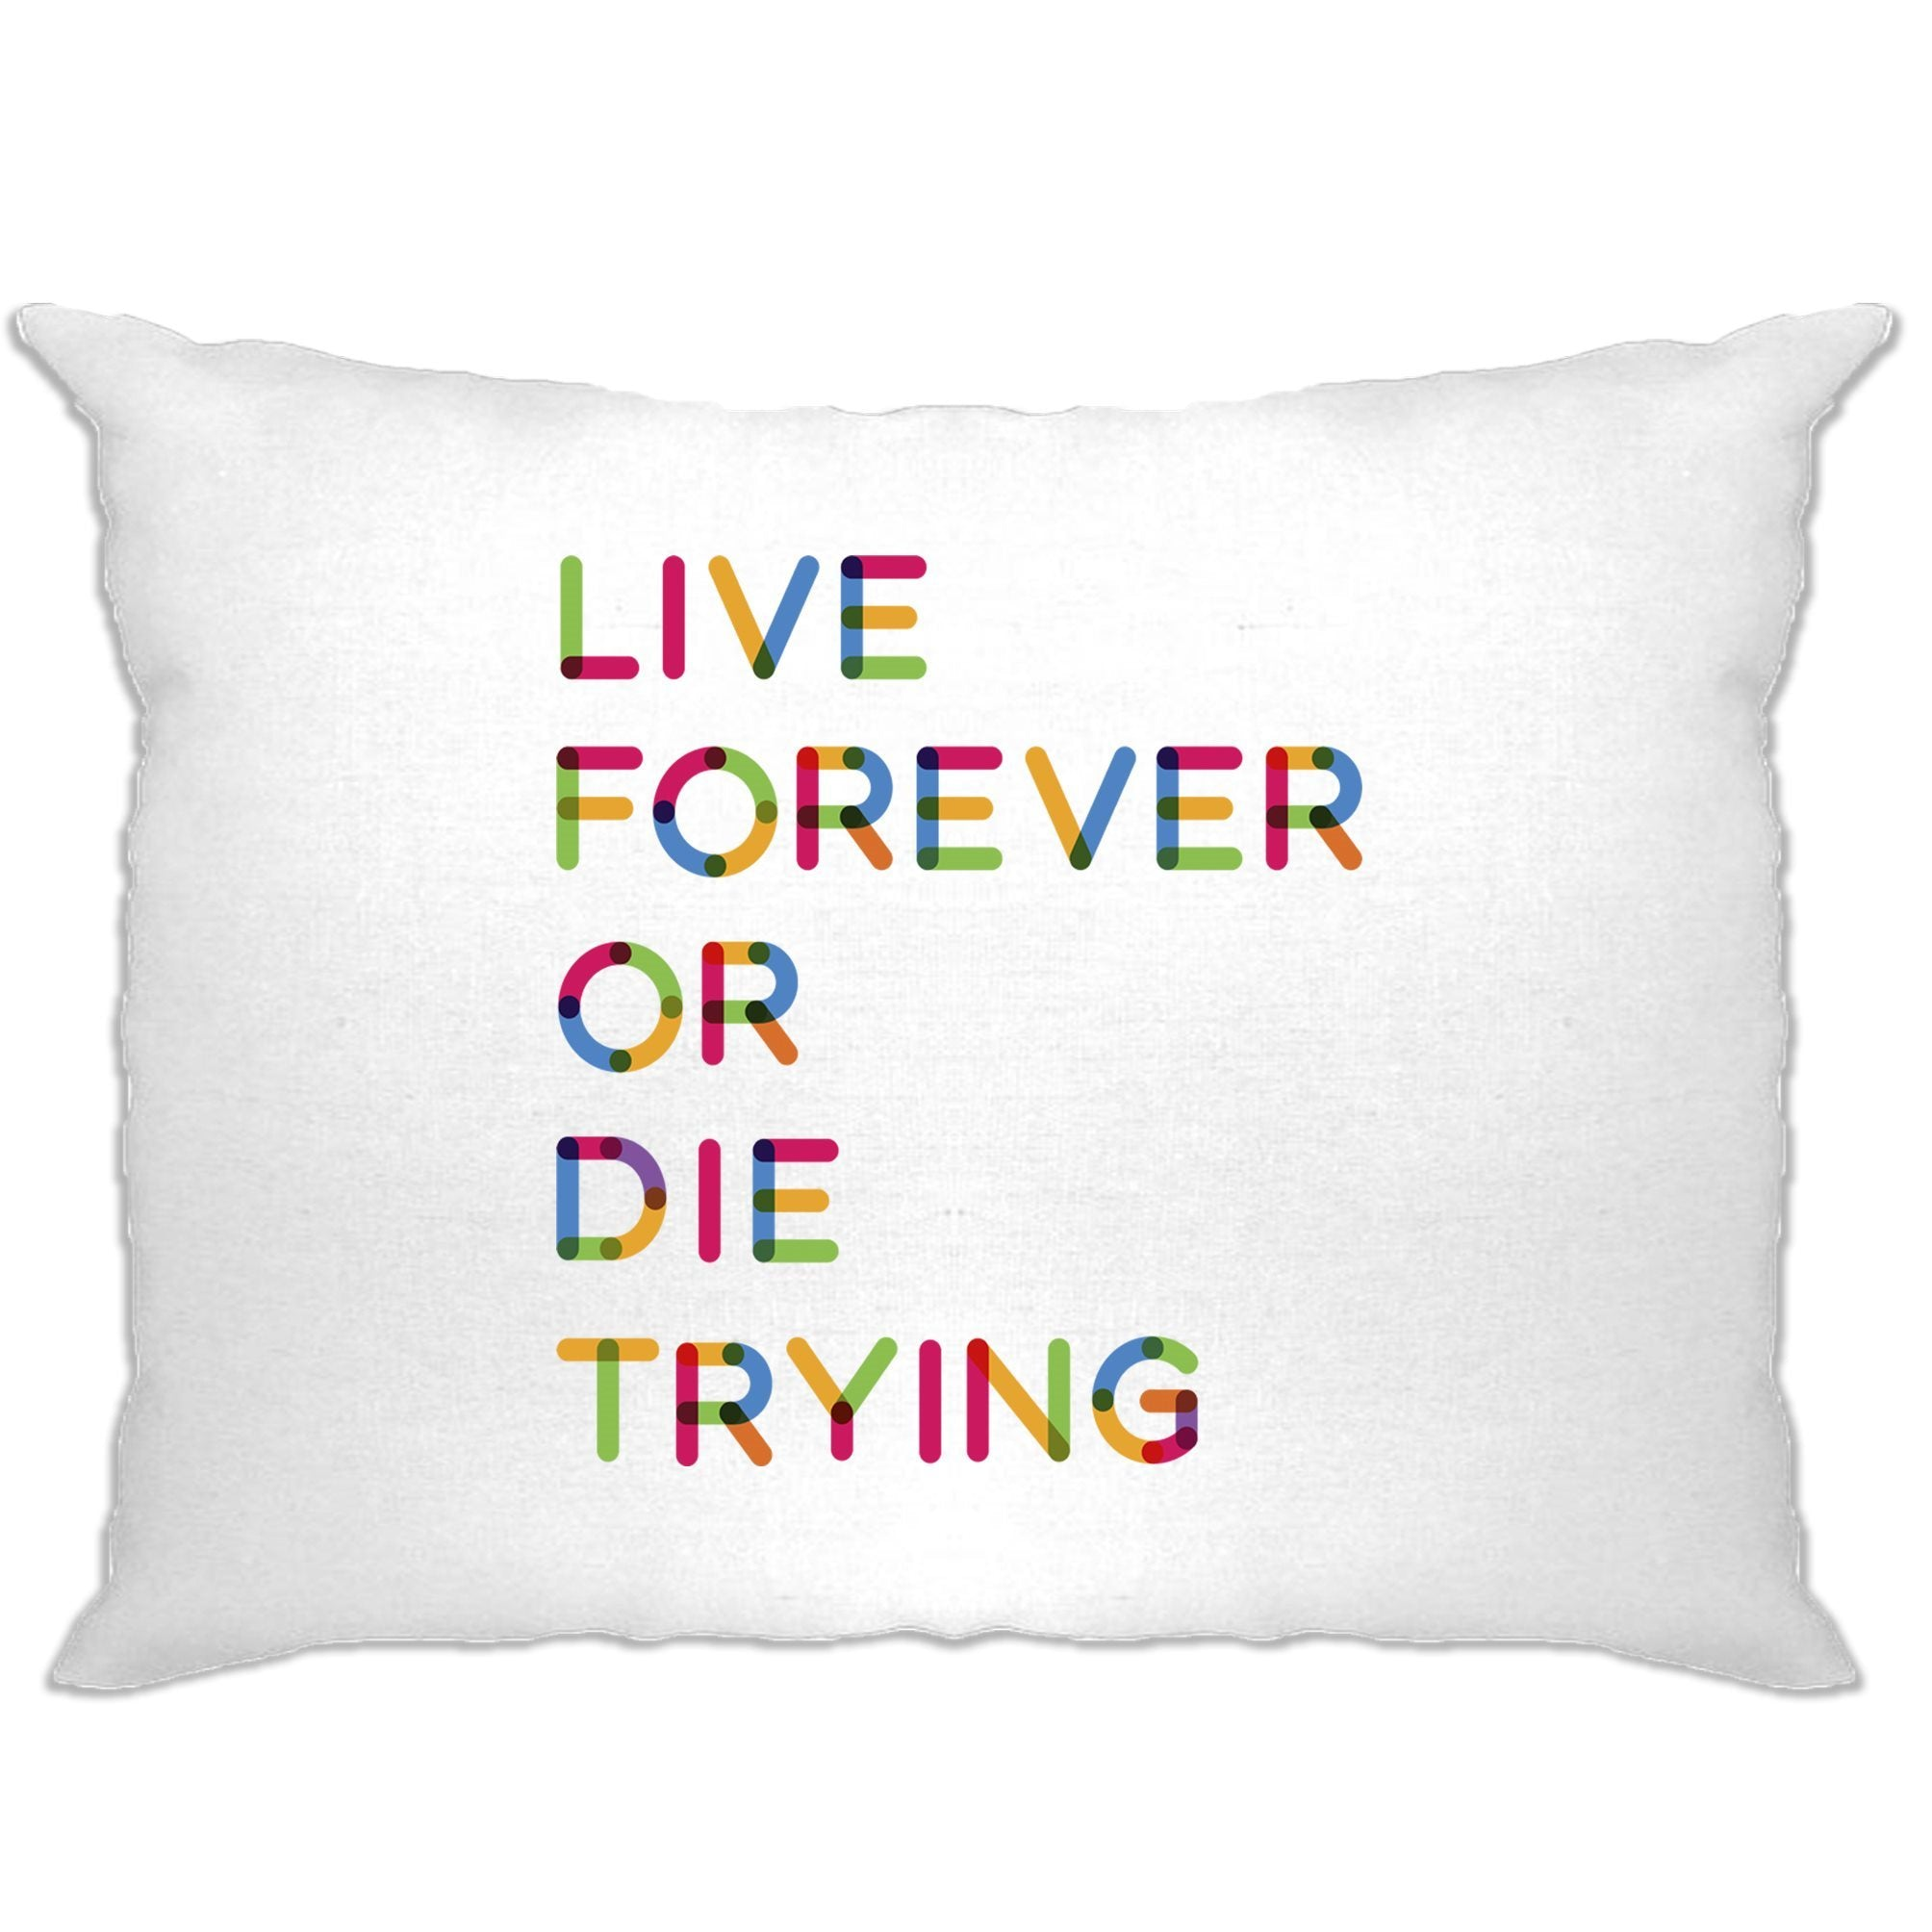 Inspirational Pillow Case Live Forever Or Die Trying